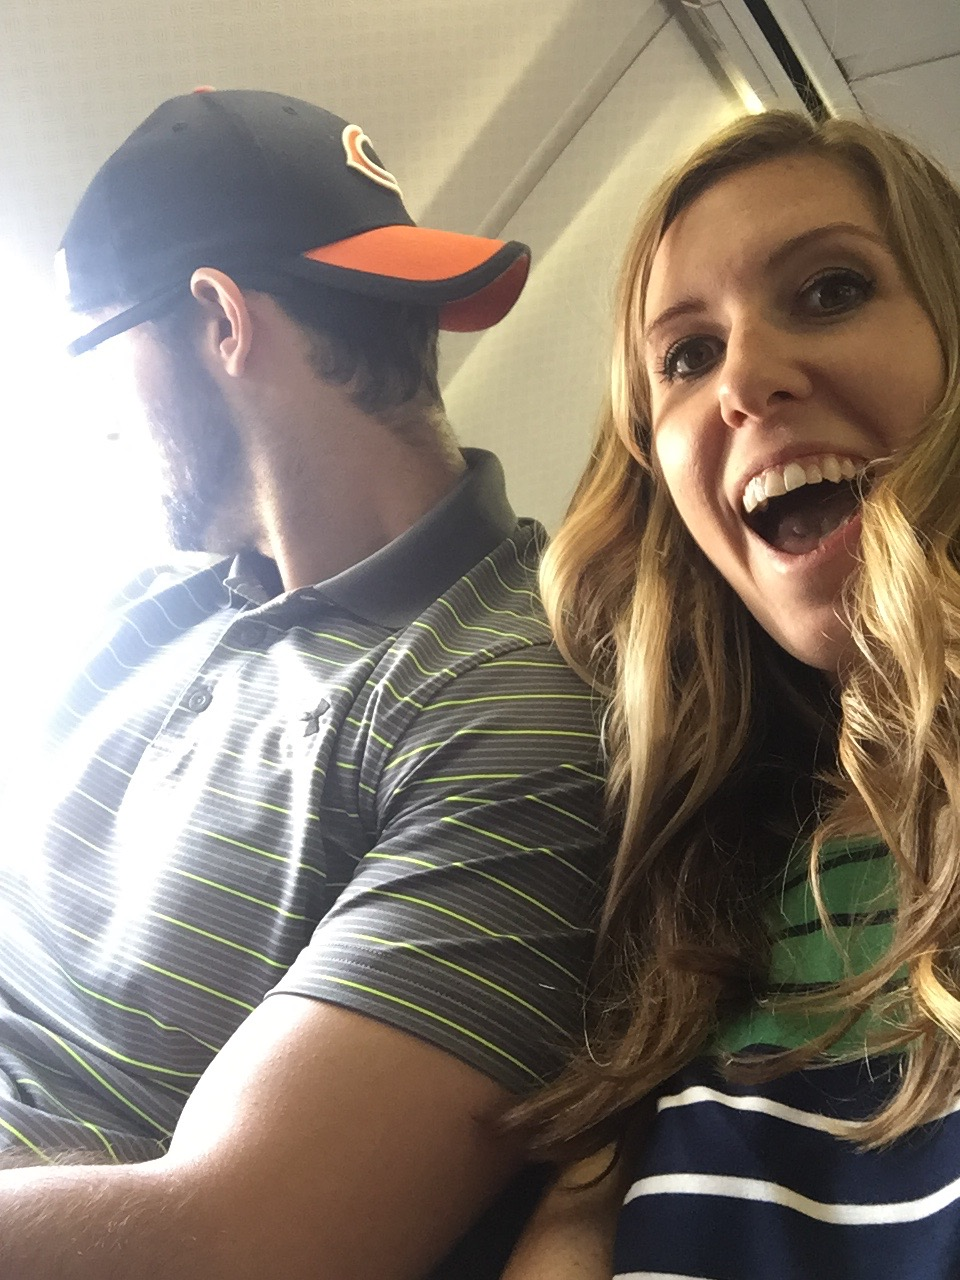 Chauncey refusing to take a picture on the plane